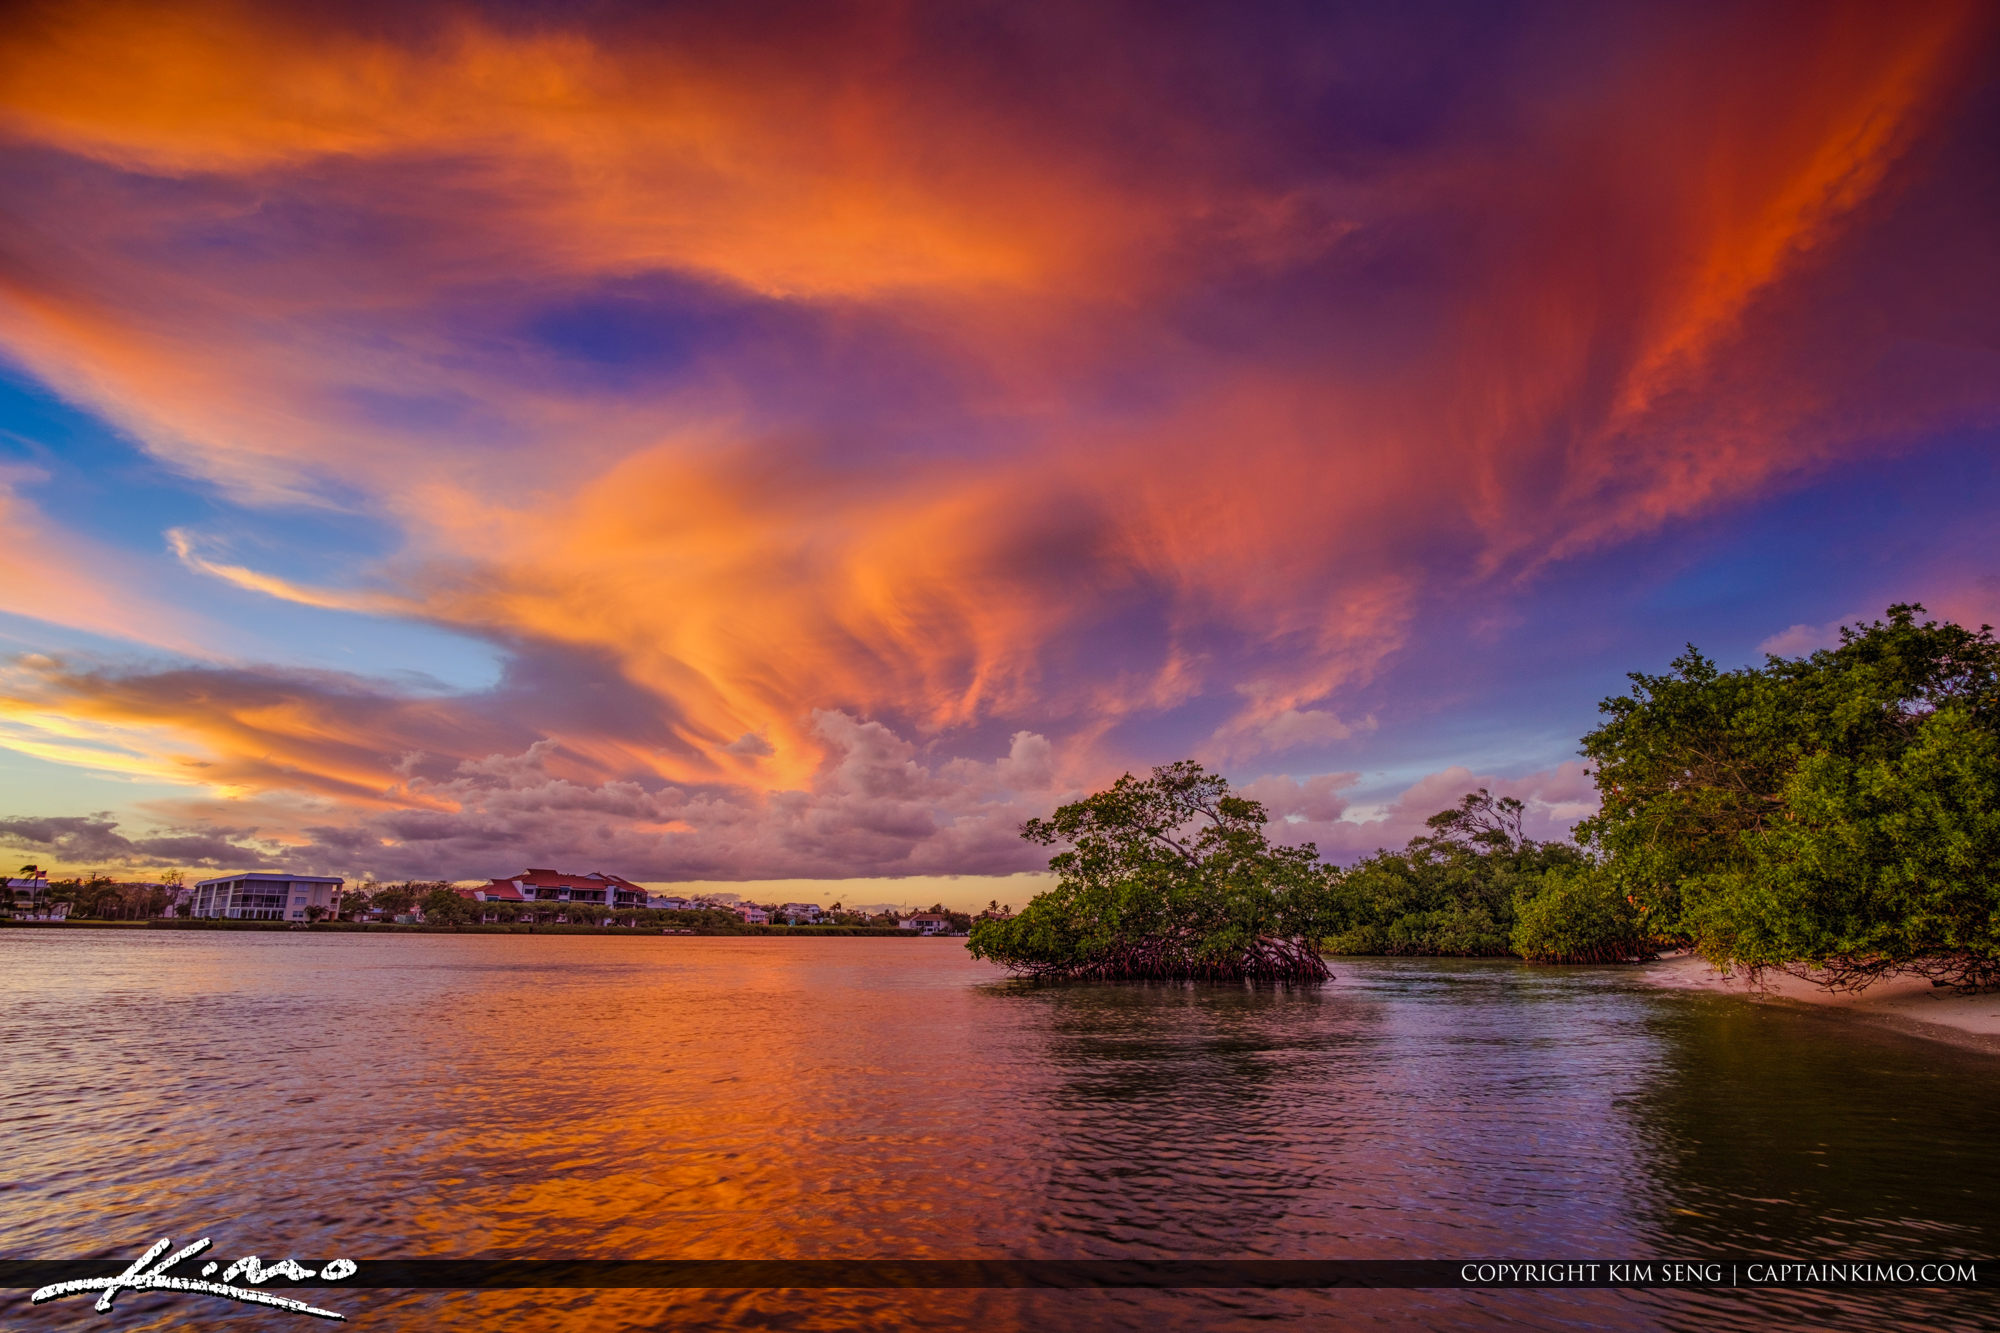 Beautiful Sky Colors Over the Jupiter Island Waterway